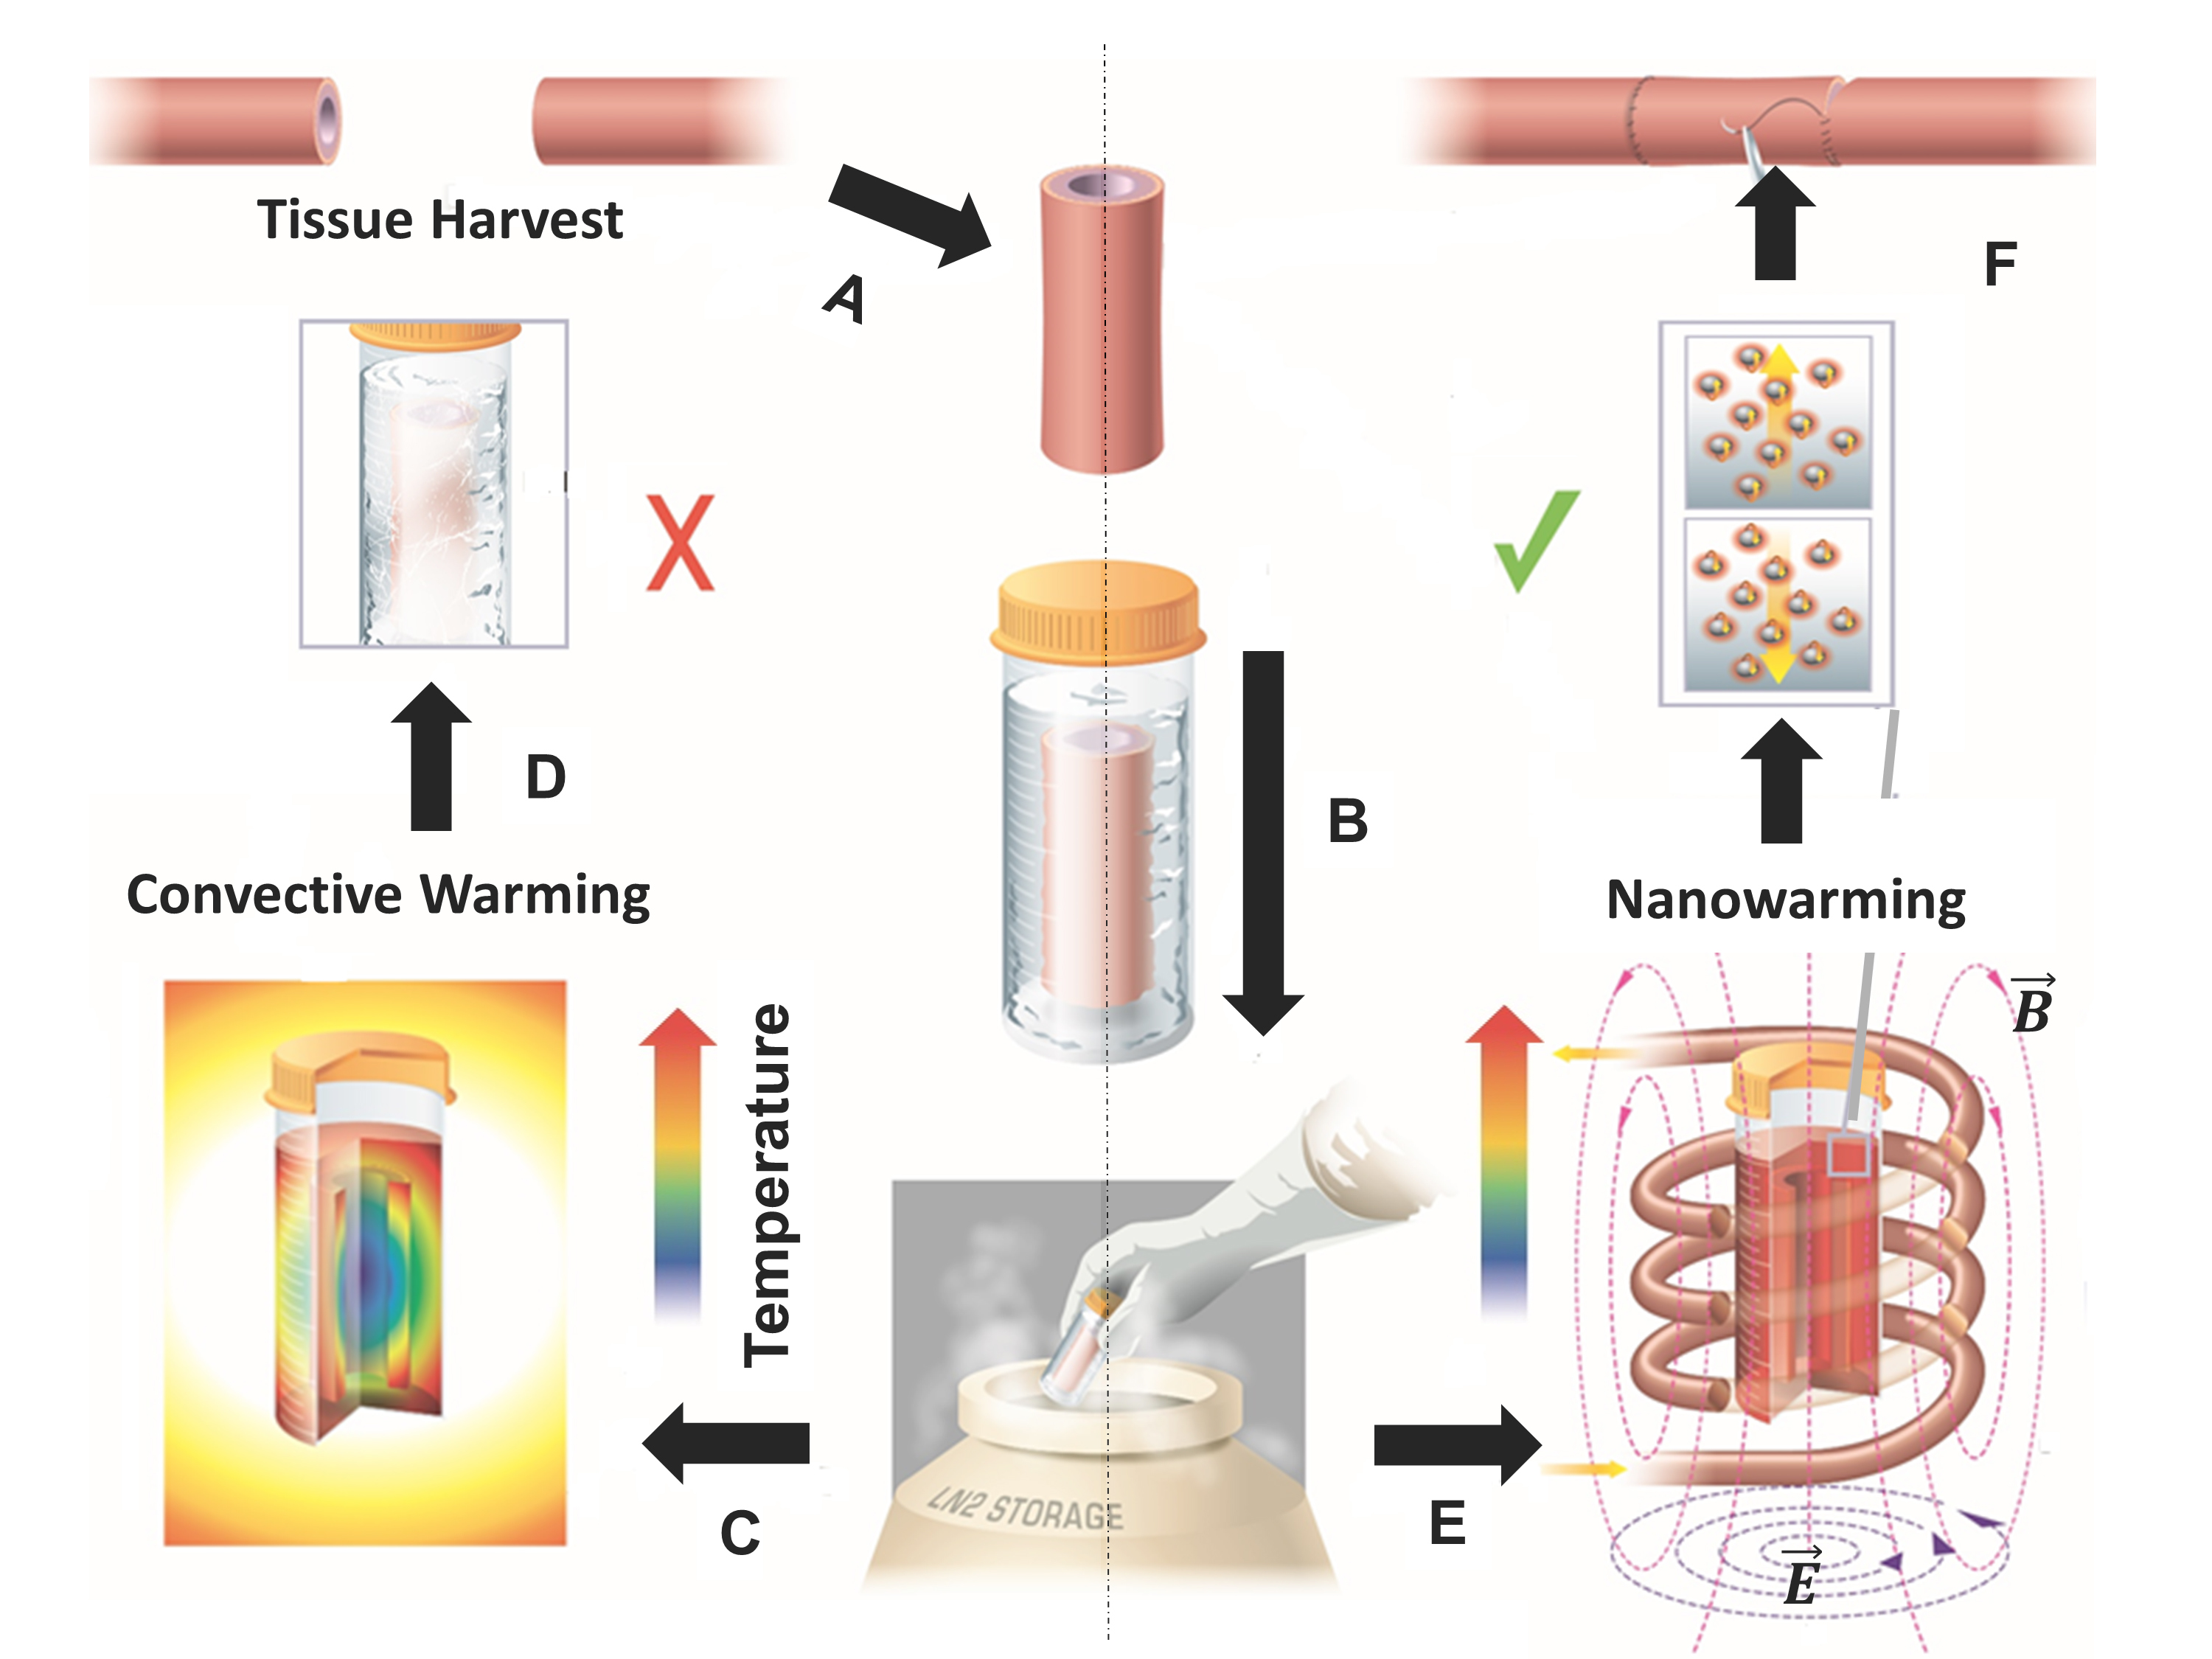 Unlike its predecessors, this new technique is capable of heating the cryogenic tissue evenly.